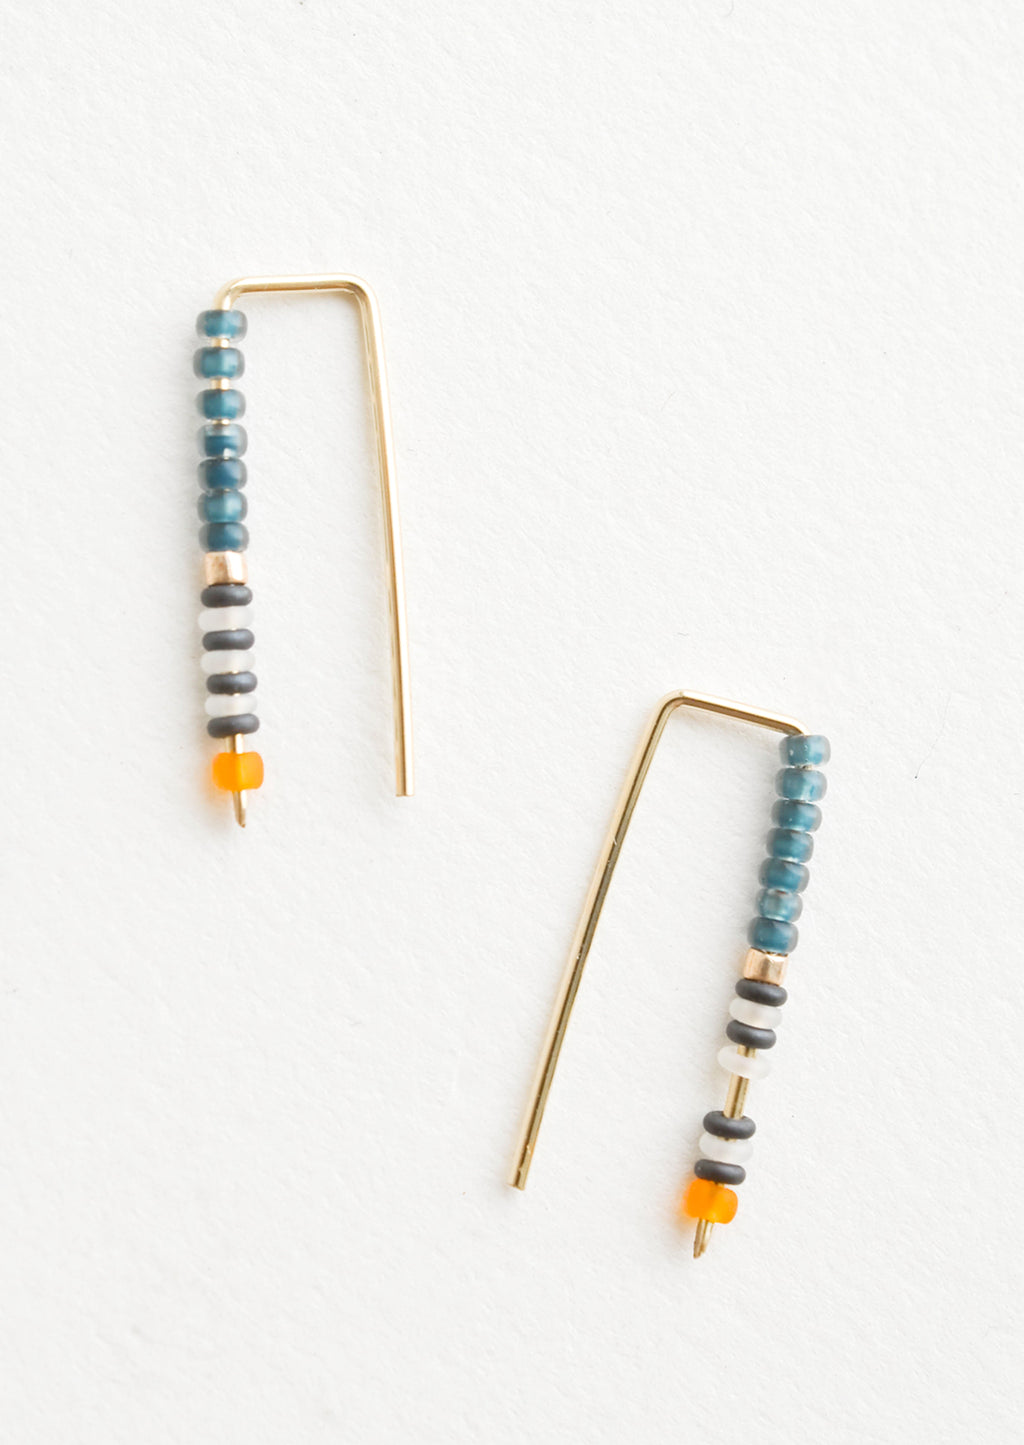 Petrol / Orange: Staple shaped earrings in gold metal with stacked glass seed beads on one side in a mix of colors